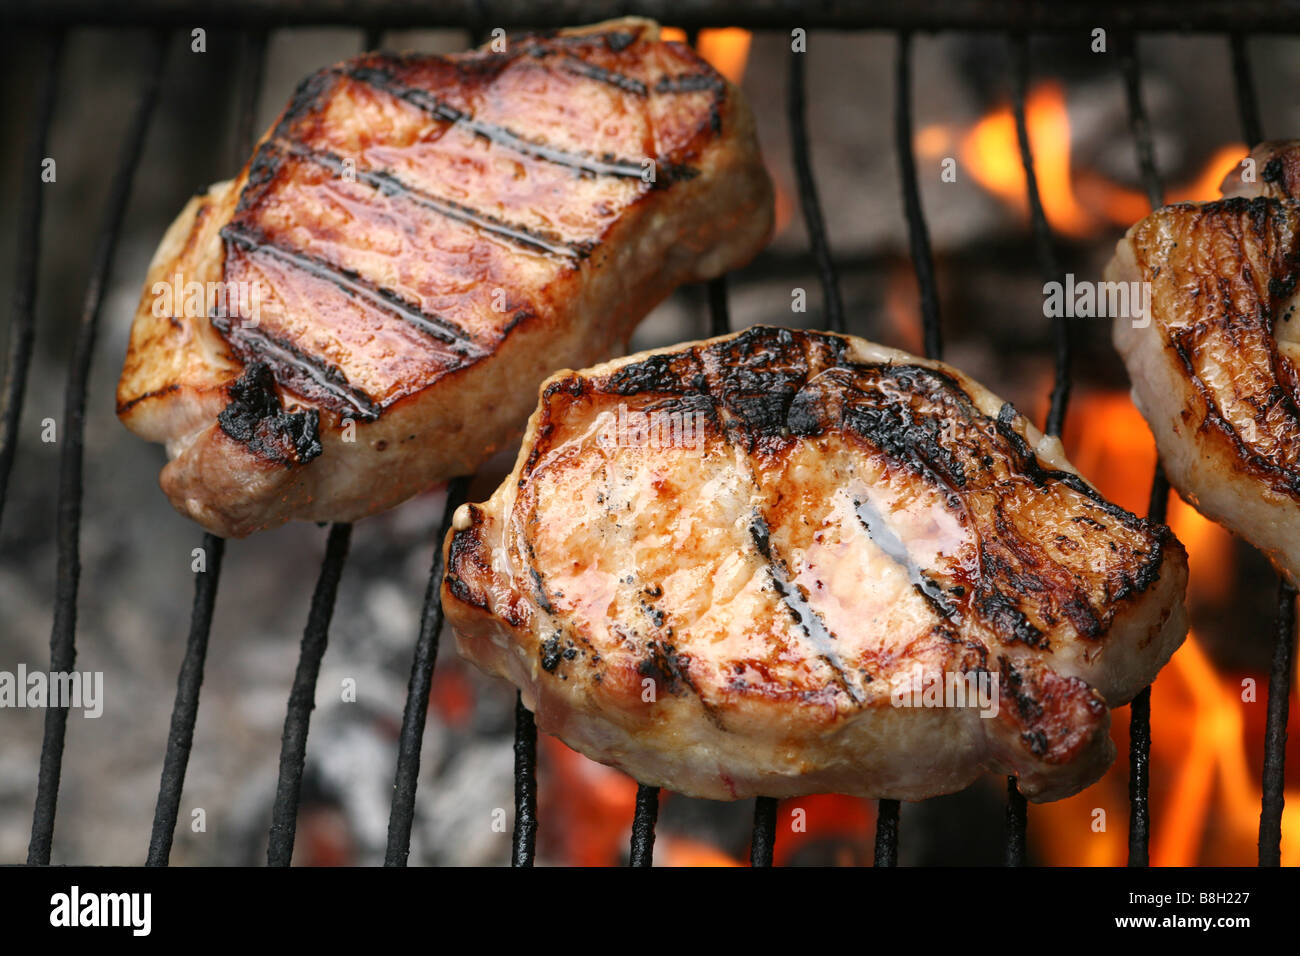 Bangalow Pork chops grilling over an open fire - Stock Image